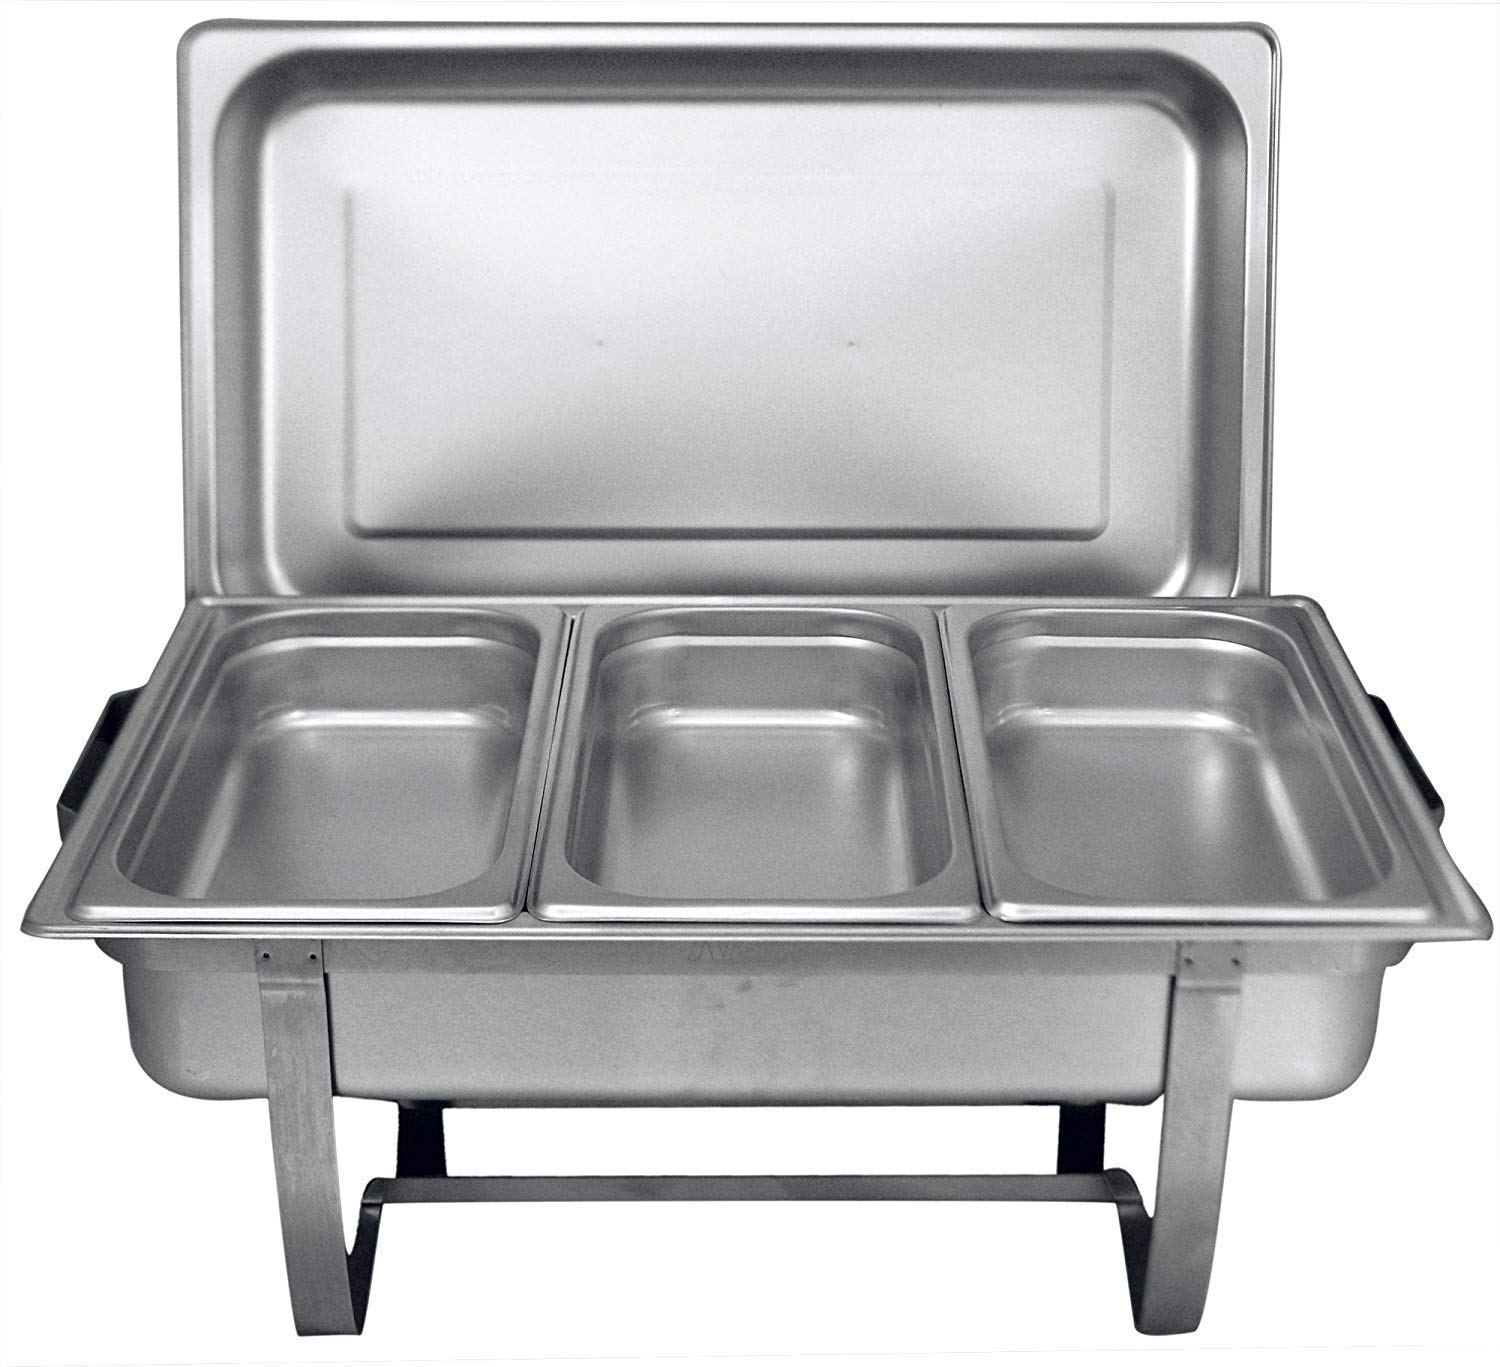 Tiger Chef 8 Quart Full Size Stainless Steel Chafer with Folding Frame and 3 1/3rd Size Chafing Dishes Food Pans and Cool-Touch Plastic on Top by Tiger Chef